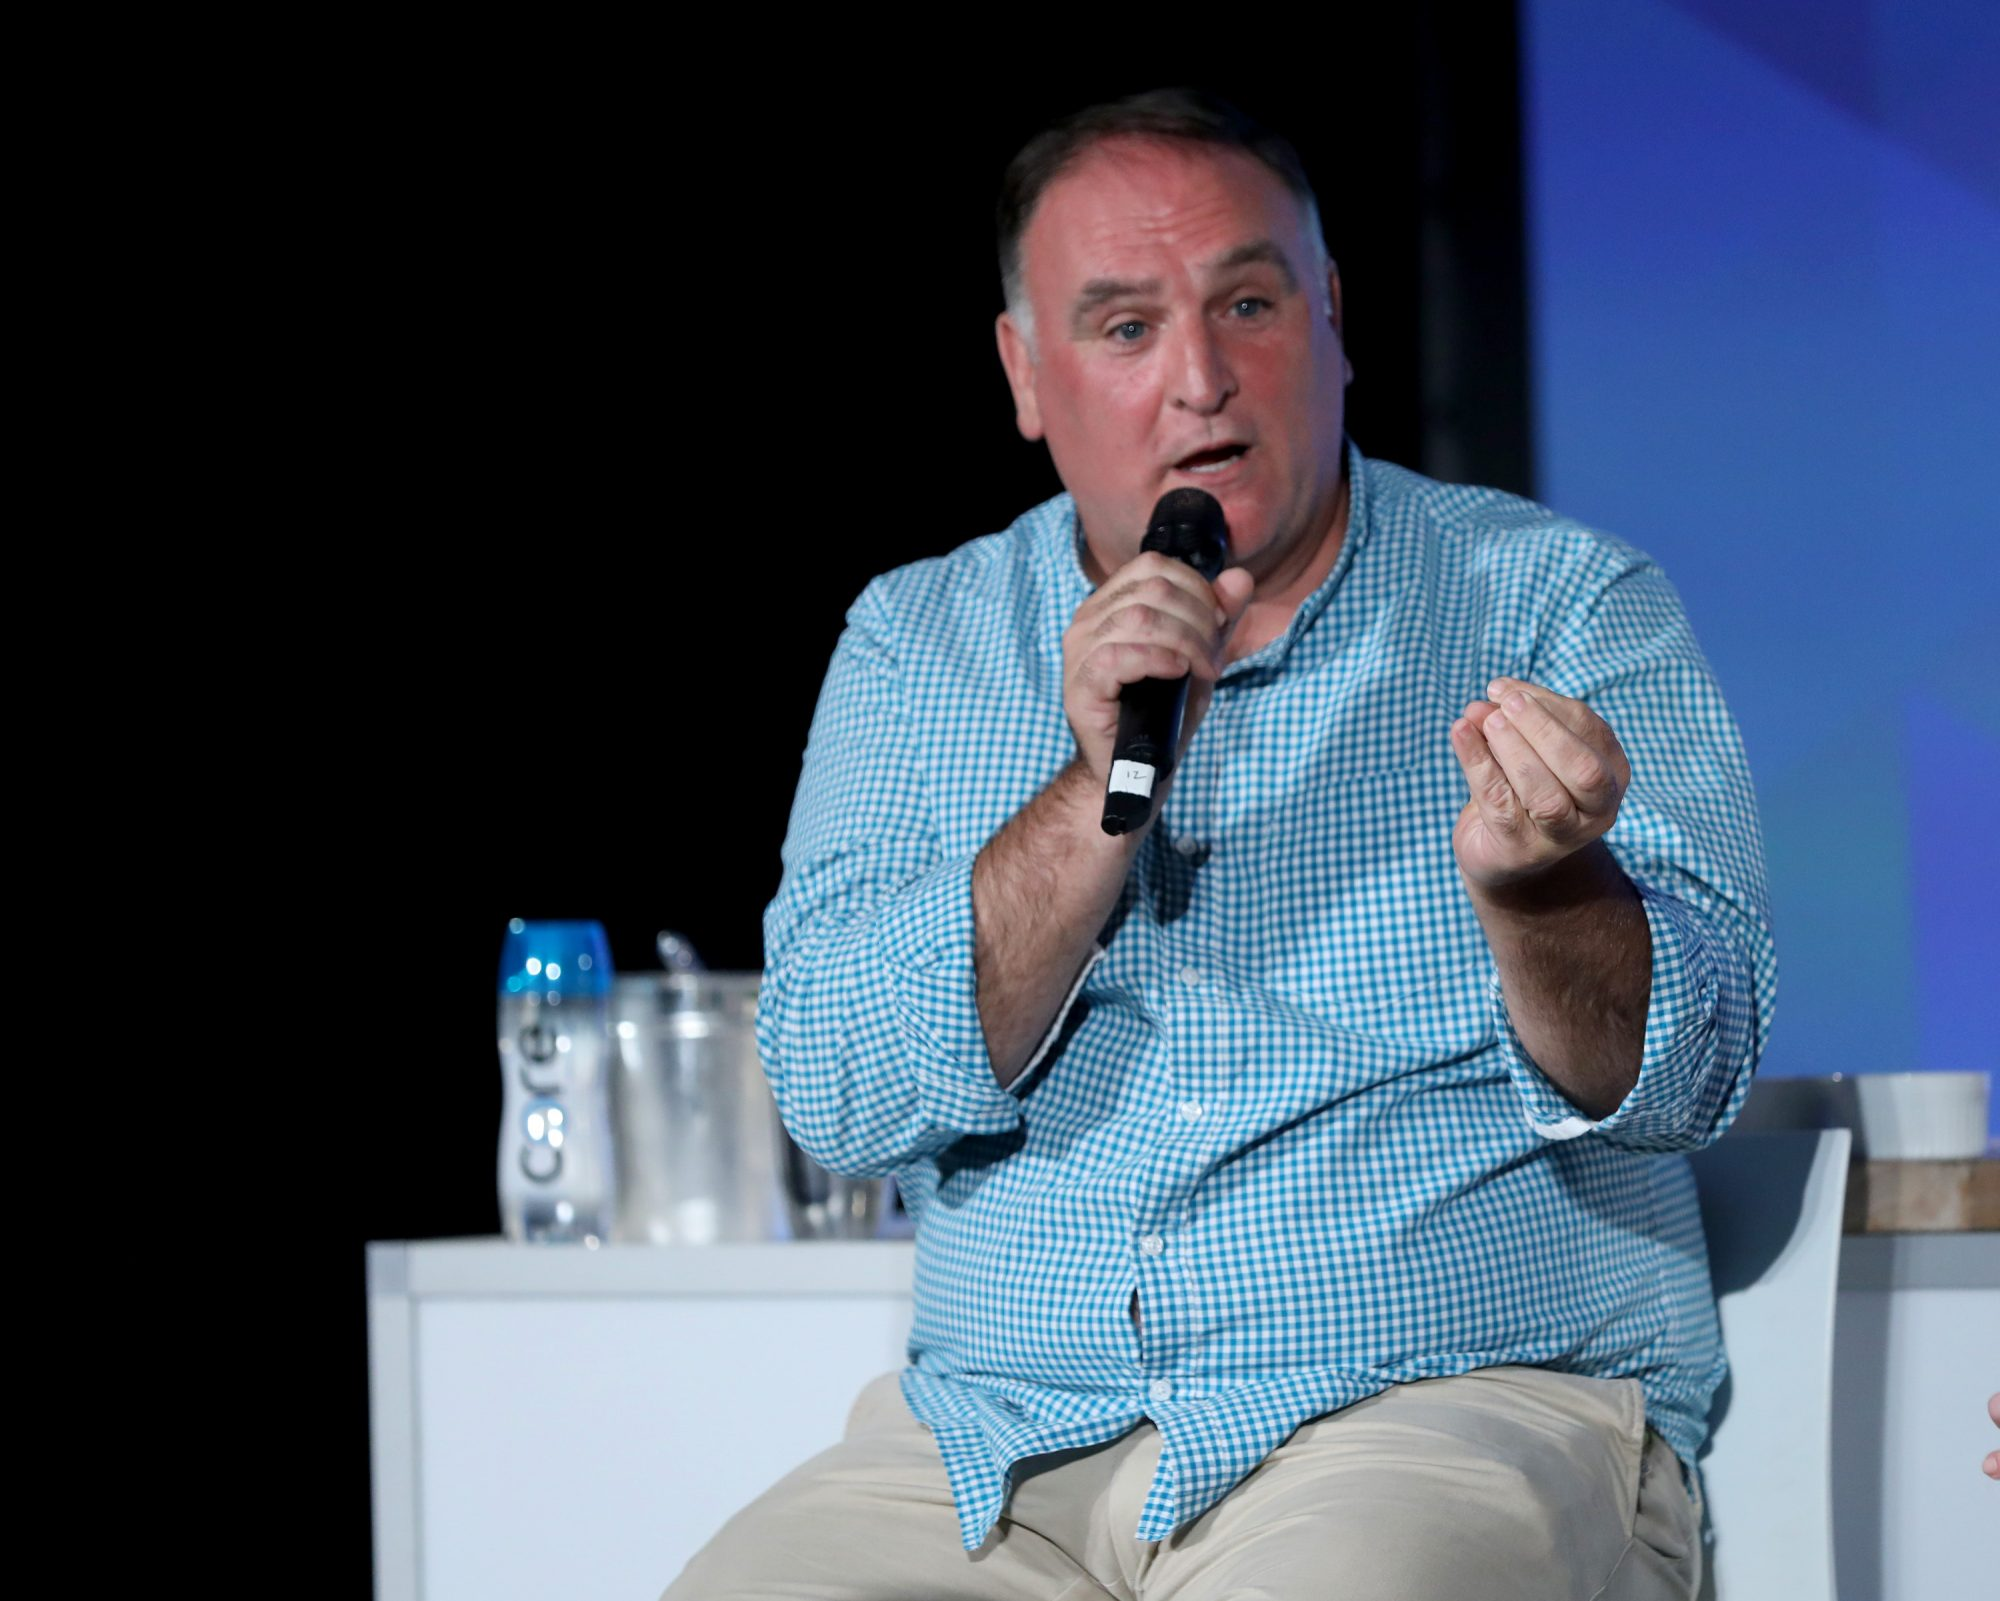 José Andrés Talks Puerto Rico Relief, Robots and the White House at SXSW